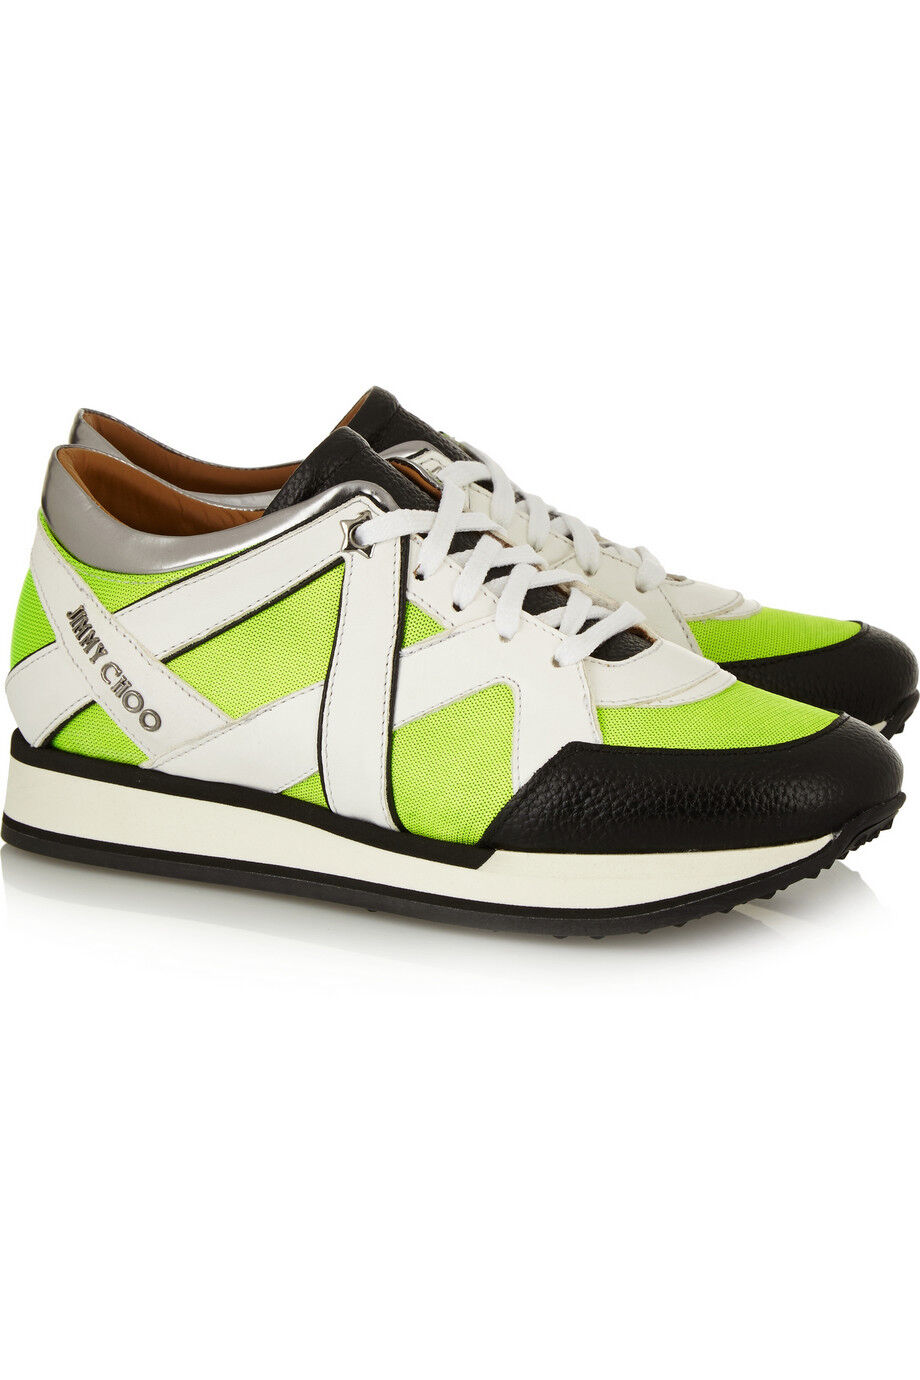 Jimmy Choo Yellow Lime London Neon Mesh And Leather Sneakers Flat shoes 37.5- 6.5